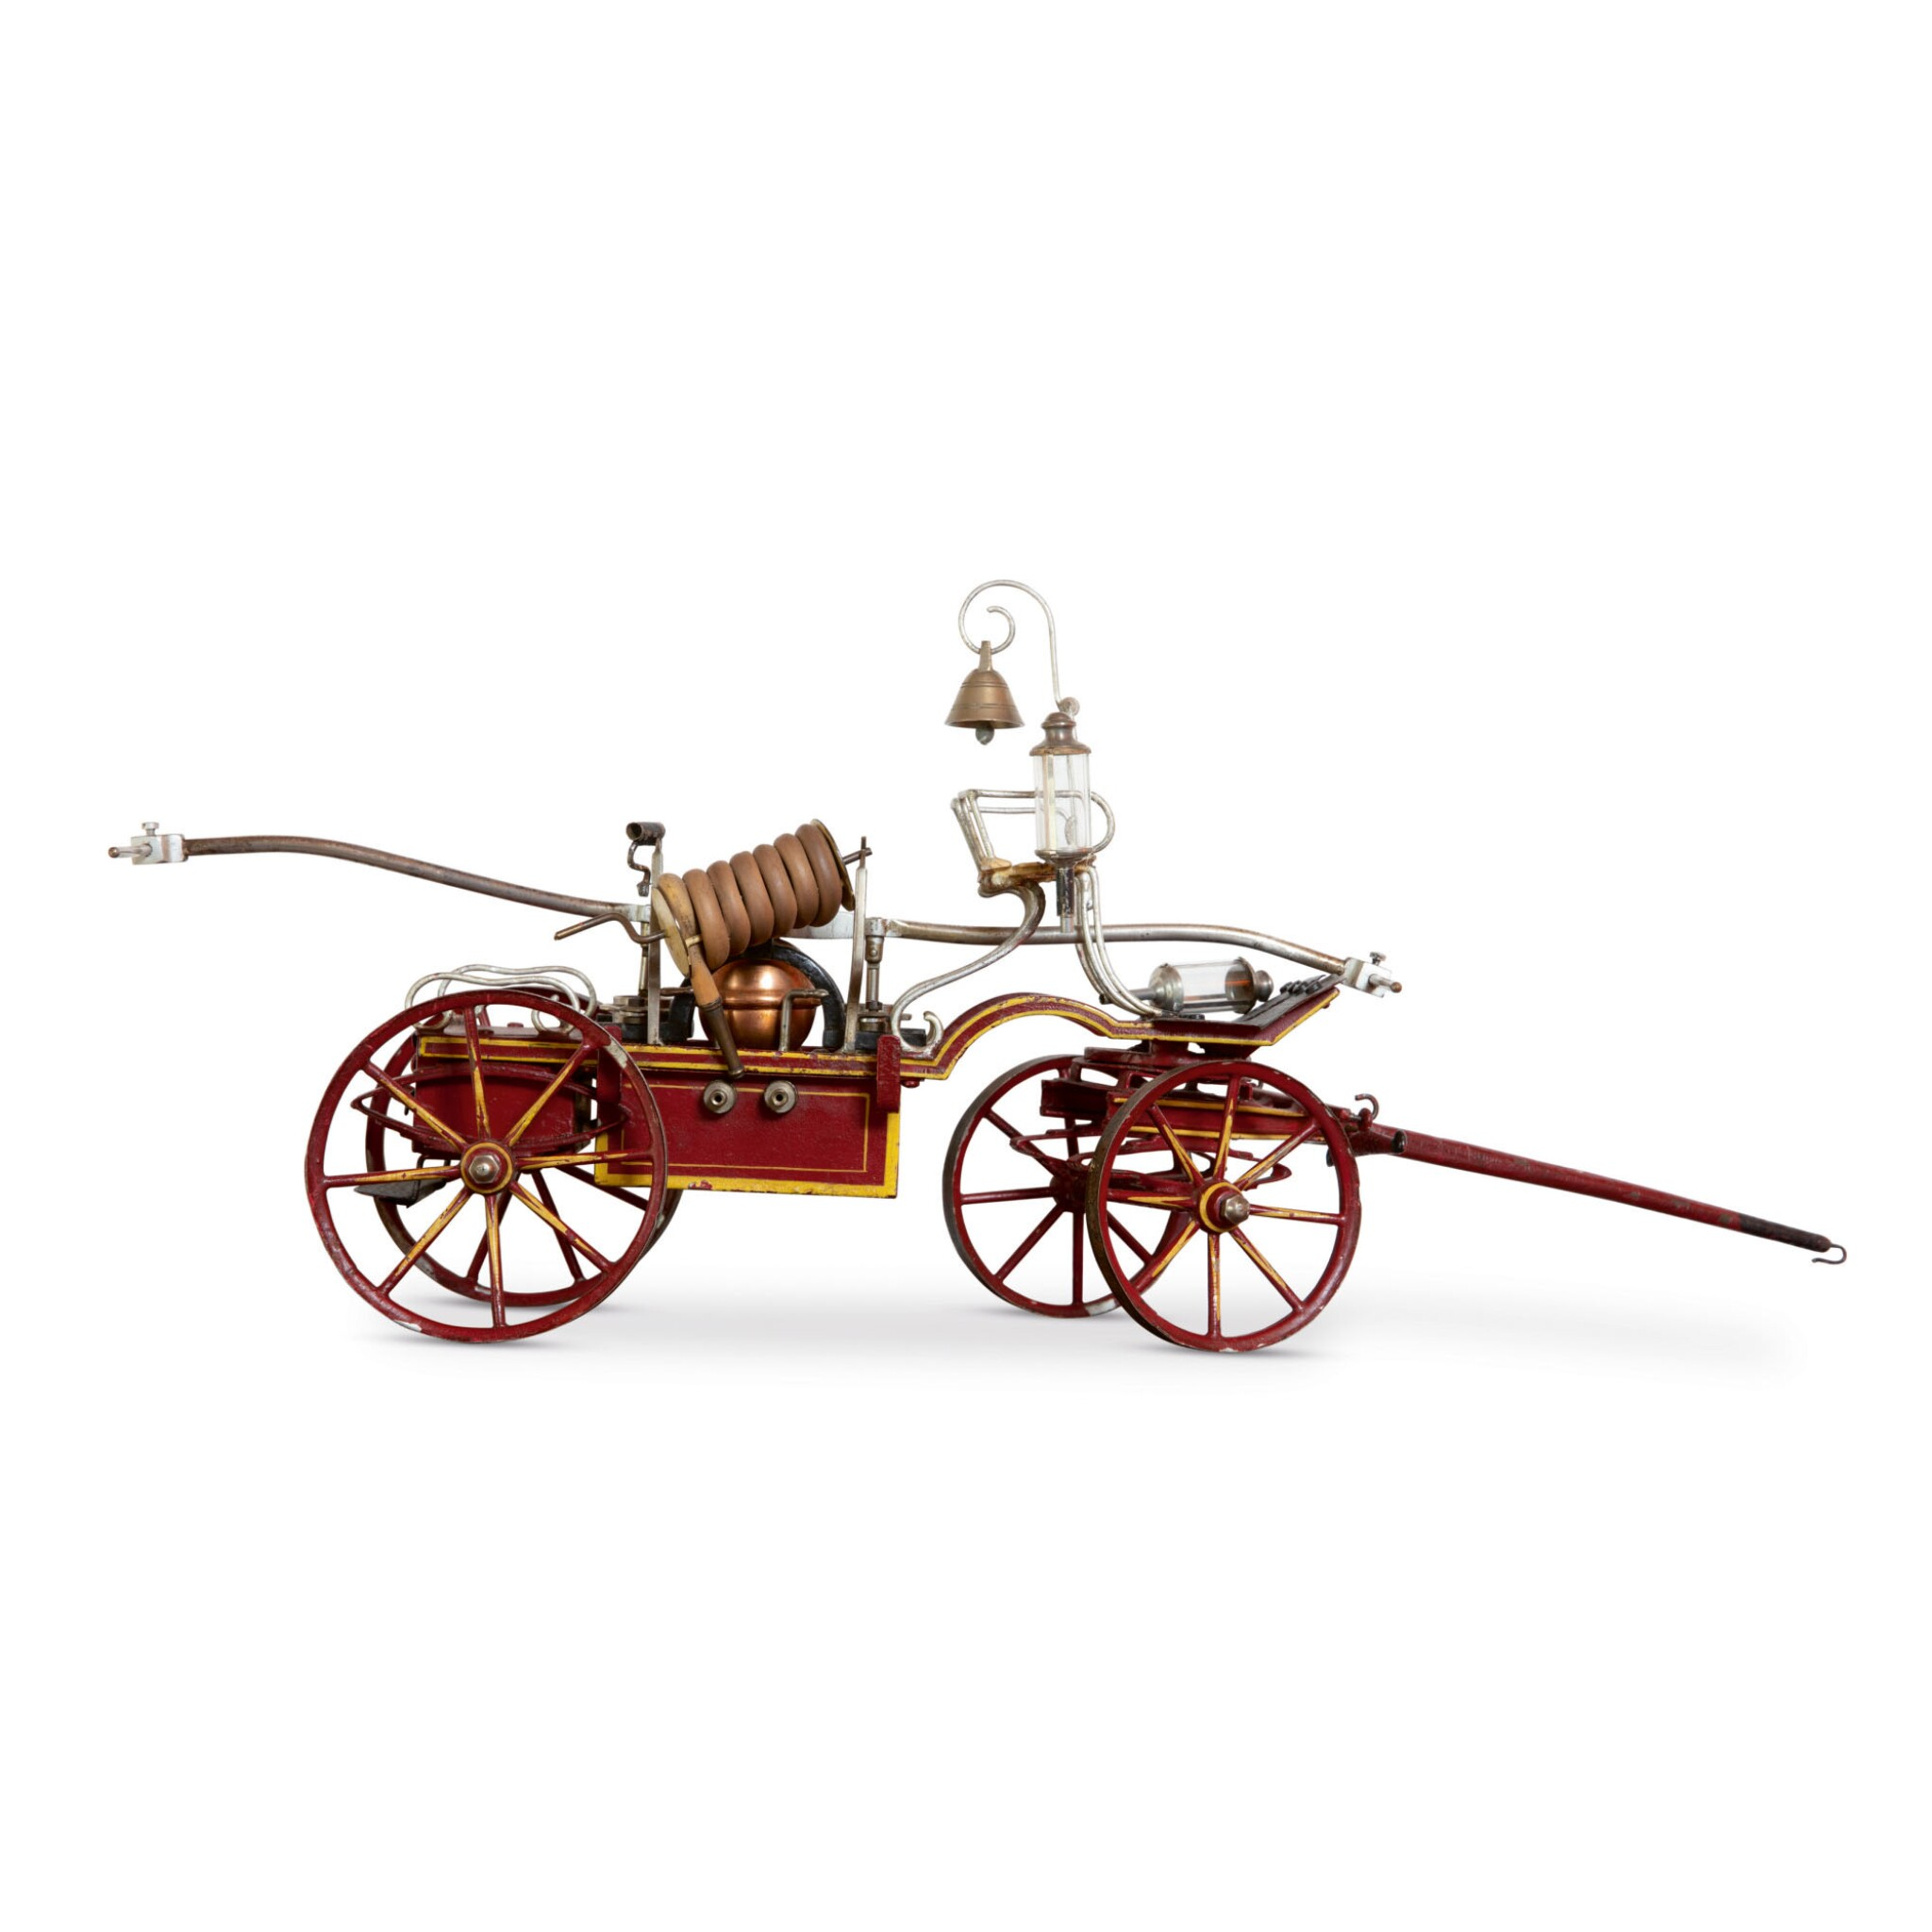 EXCEPTIONAL TOY HORSE DRAWN FIRE PUMPER, MARKLIN, GERMANY, CIRCA 1902